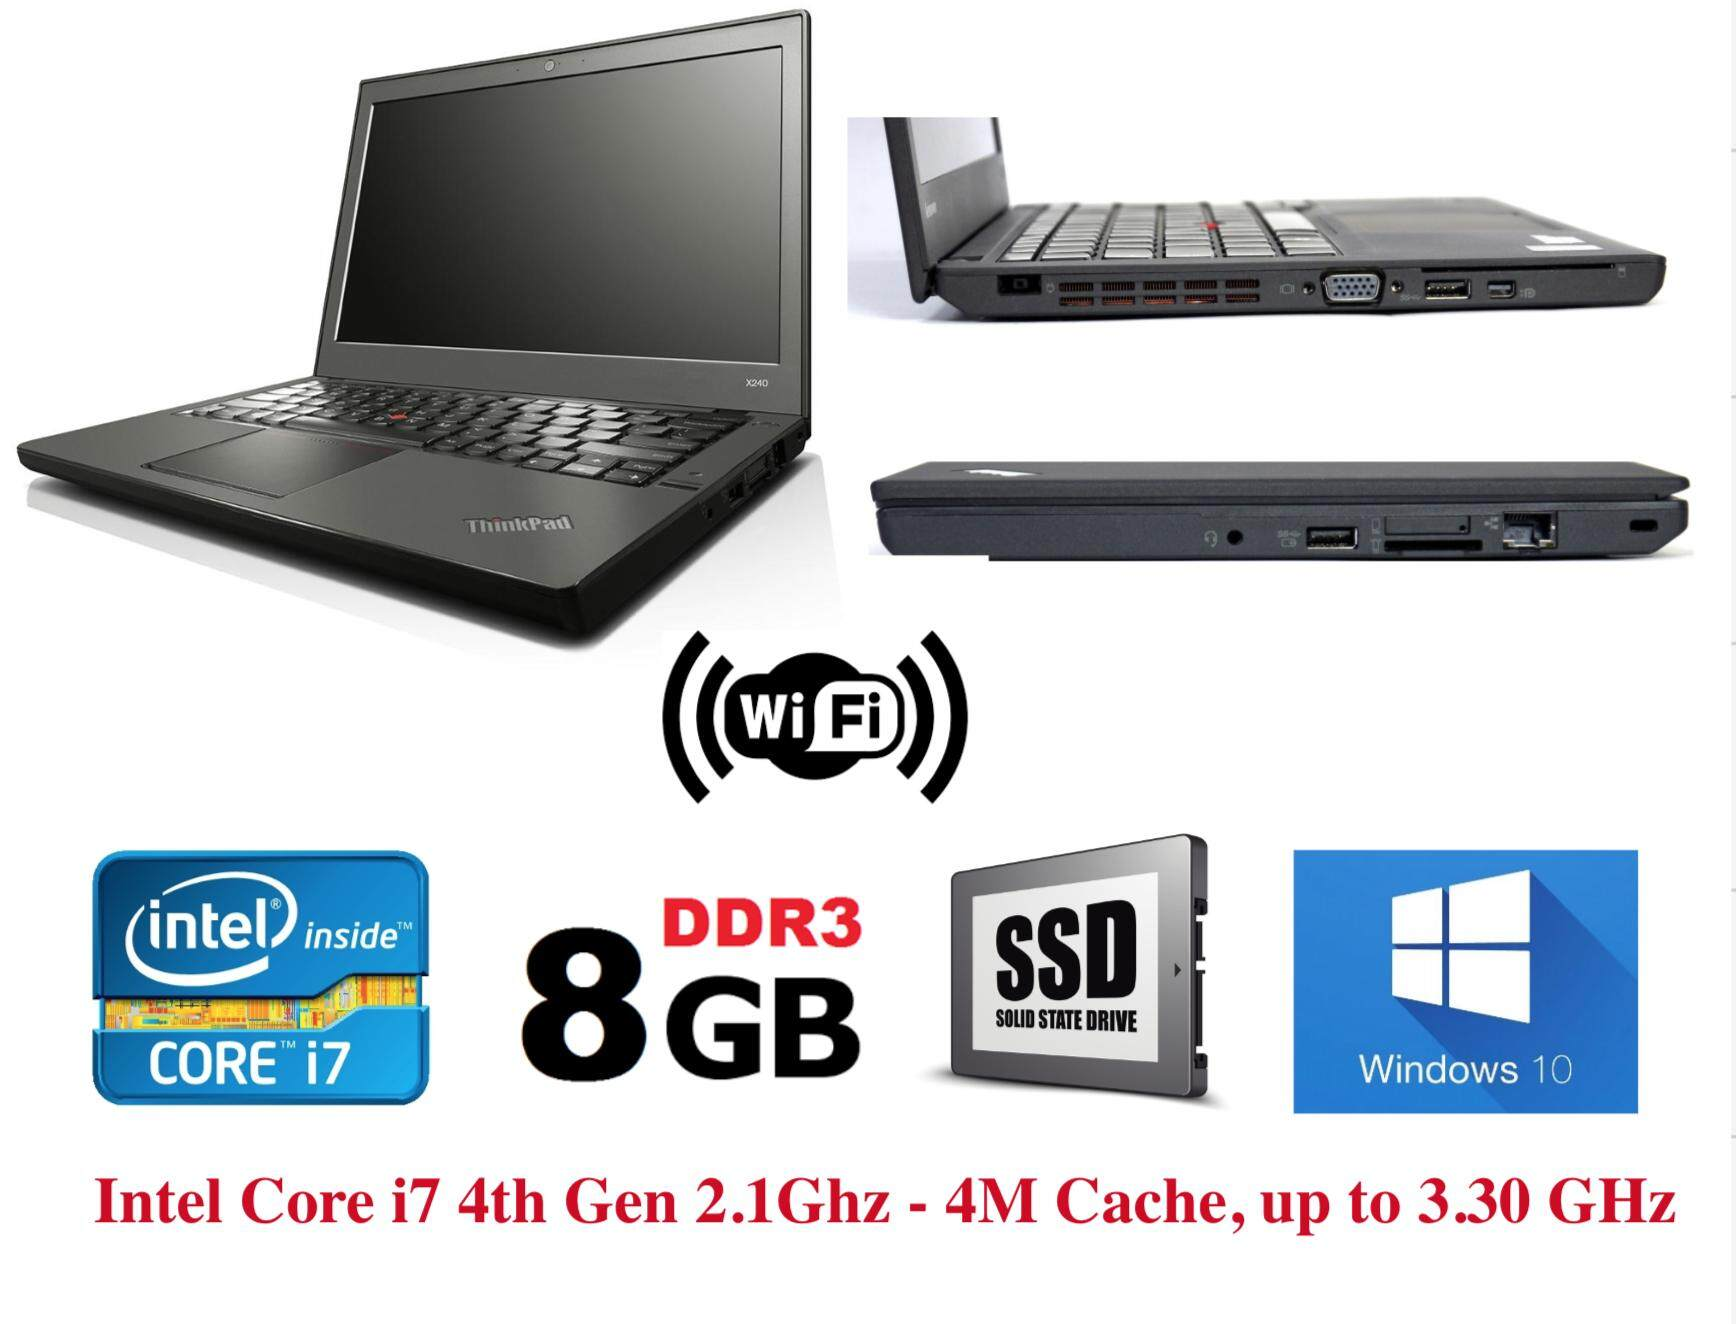 Refurbished Lenovo Thinkpad X240 Ultrabook (i7 4th Gen 2.1Ghz up to 3.30Ghz / 8GB RAM / 240GB SSD / Win7 COA / Win 10 Pro / Bag)  (3 Month Warranty for Laptop & 1 Month Warranty for Battery and Adaptor) Used Laptop Notebook Malaysia